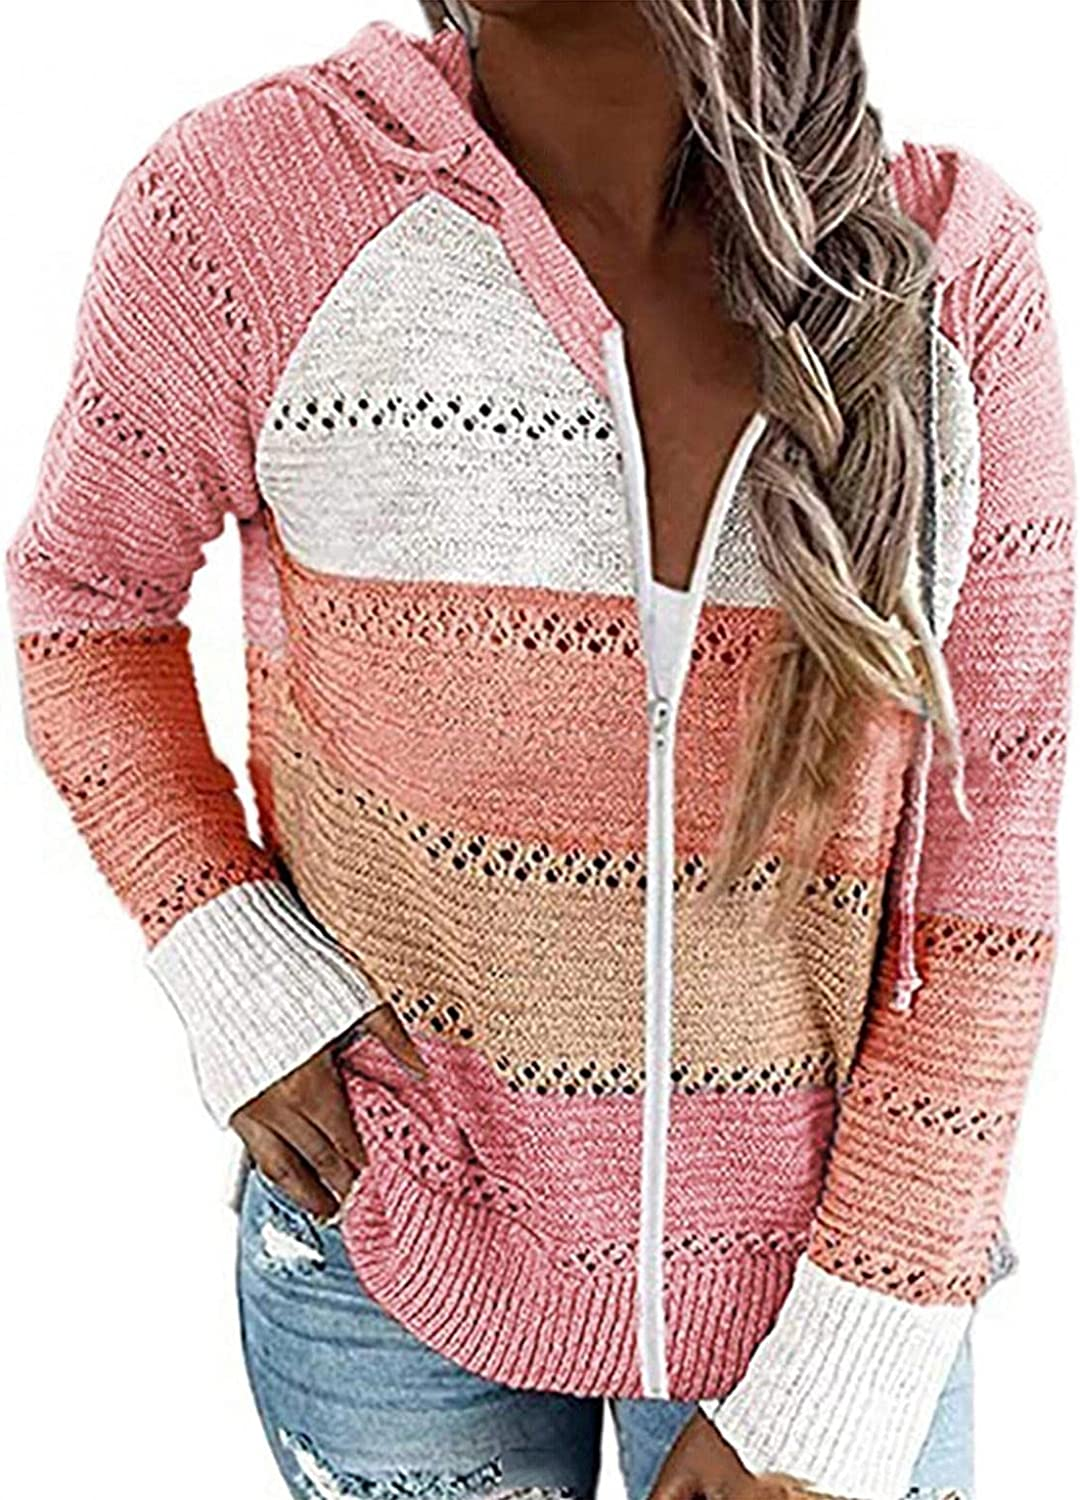 Haheyrte Cute Hoodies for Women Casual Patchwork Long Sleeve Hooded Sweater Cardigan Casual Sweatshirts Pullover Tops